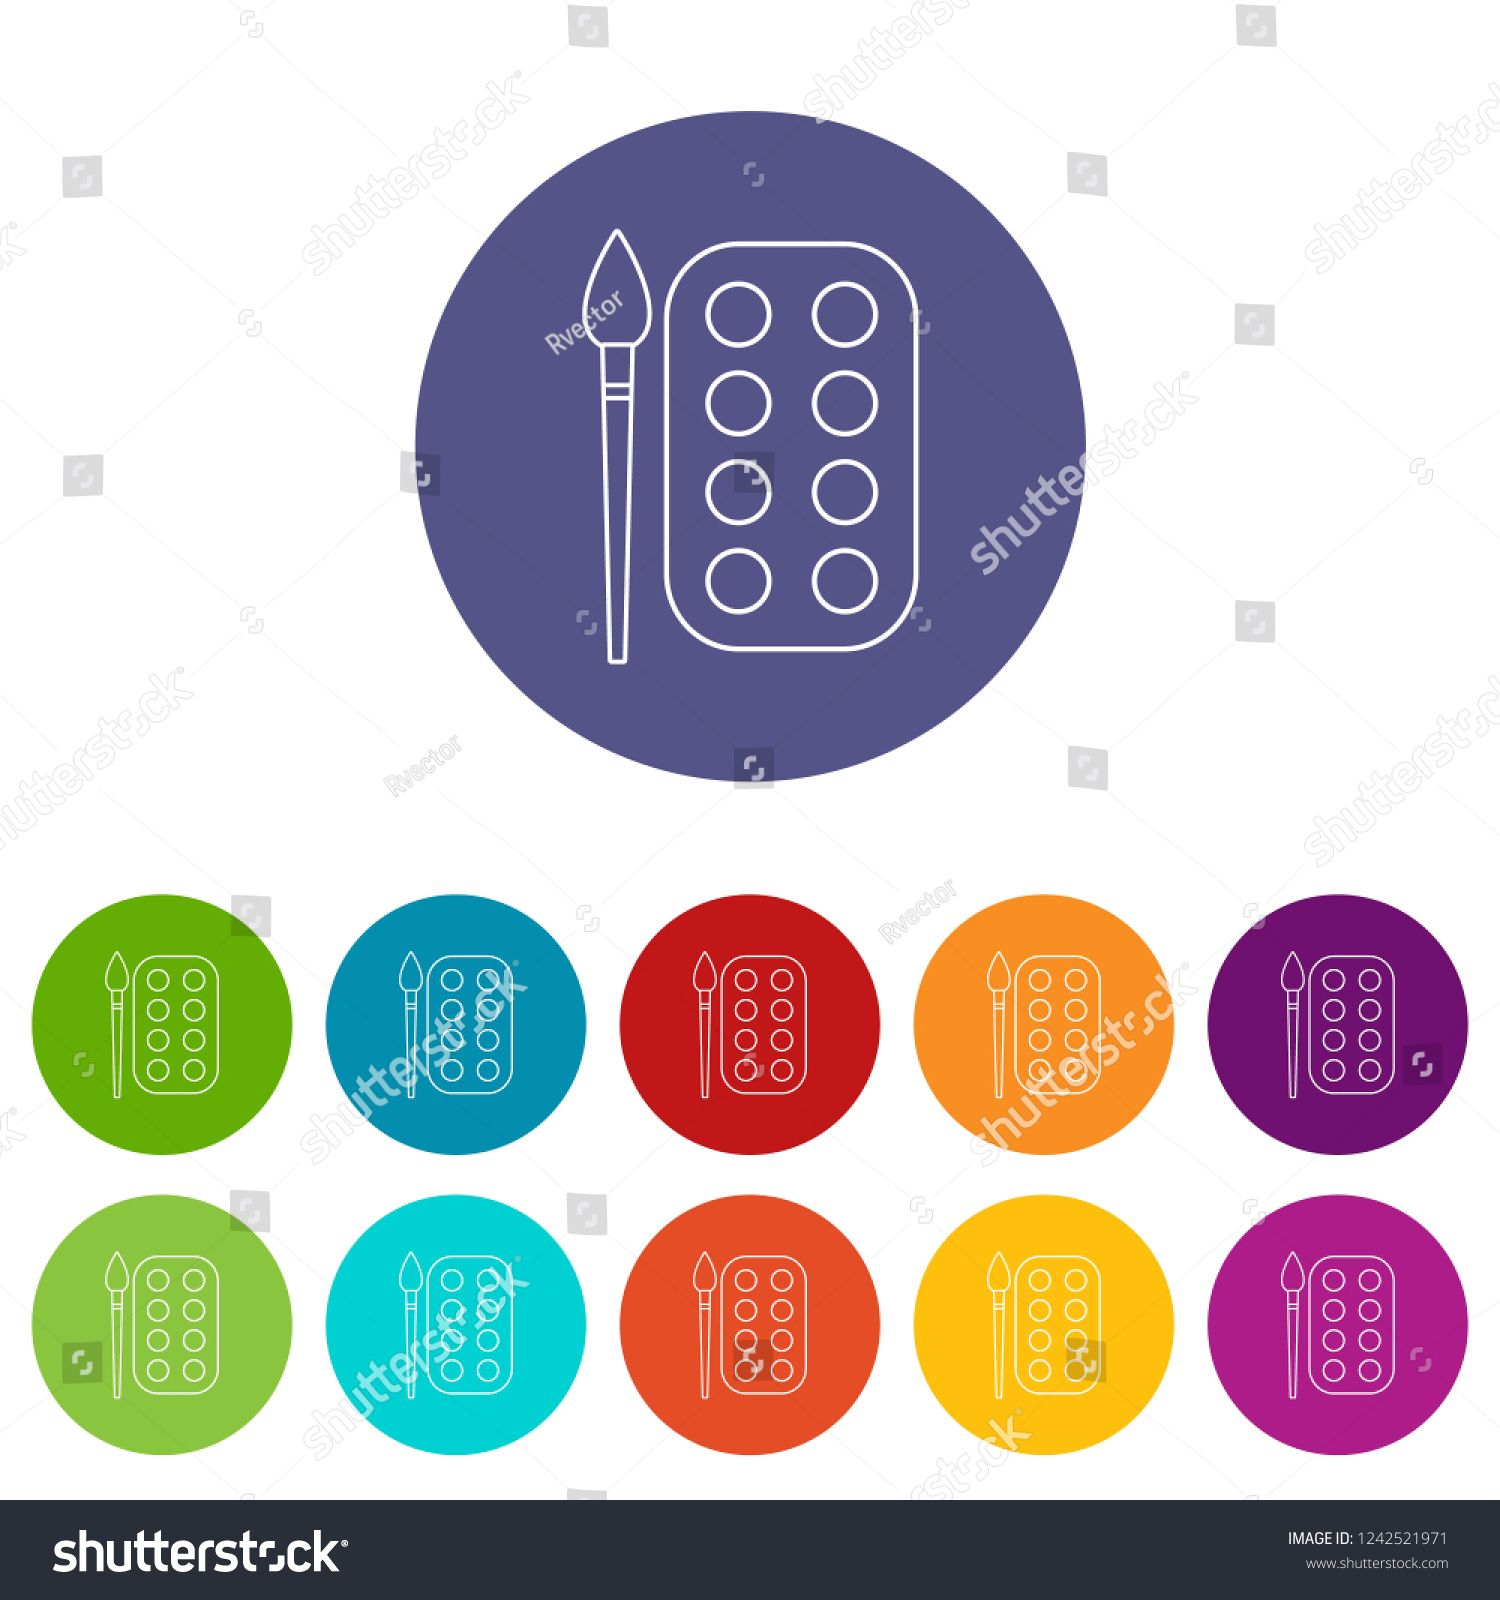 Paint Brush Palette Icons Color Set For Any Web Design On White Background Ad Ad Icons Color Palette Paint In 2020 Business Design Web Design Color Set